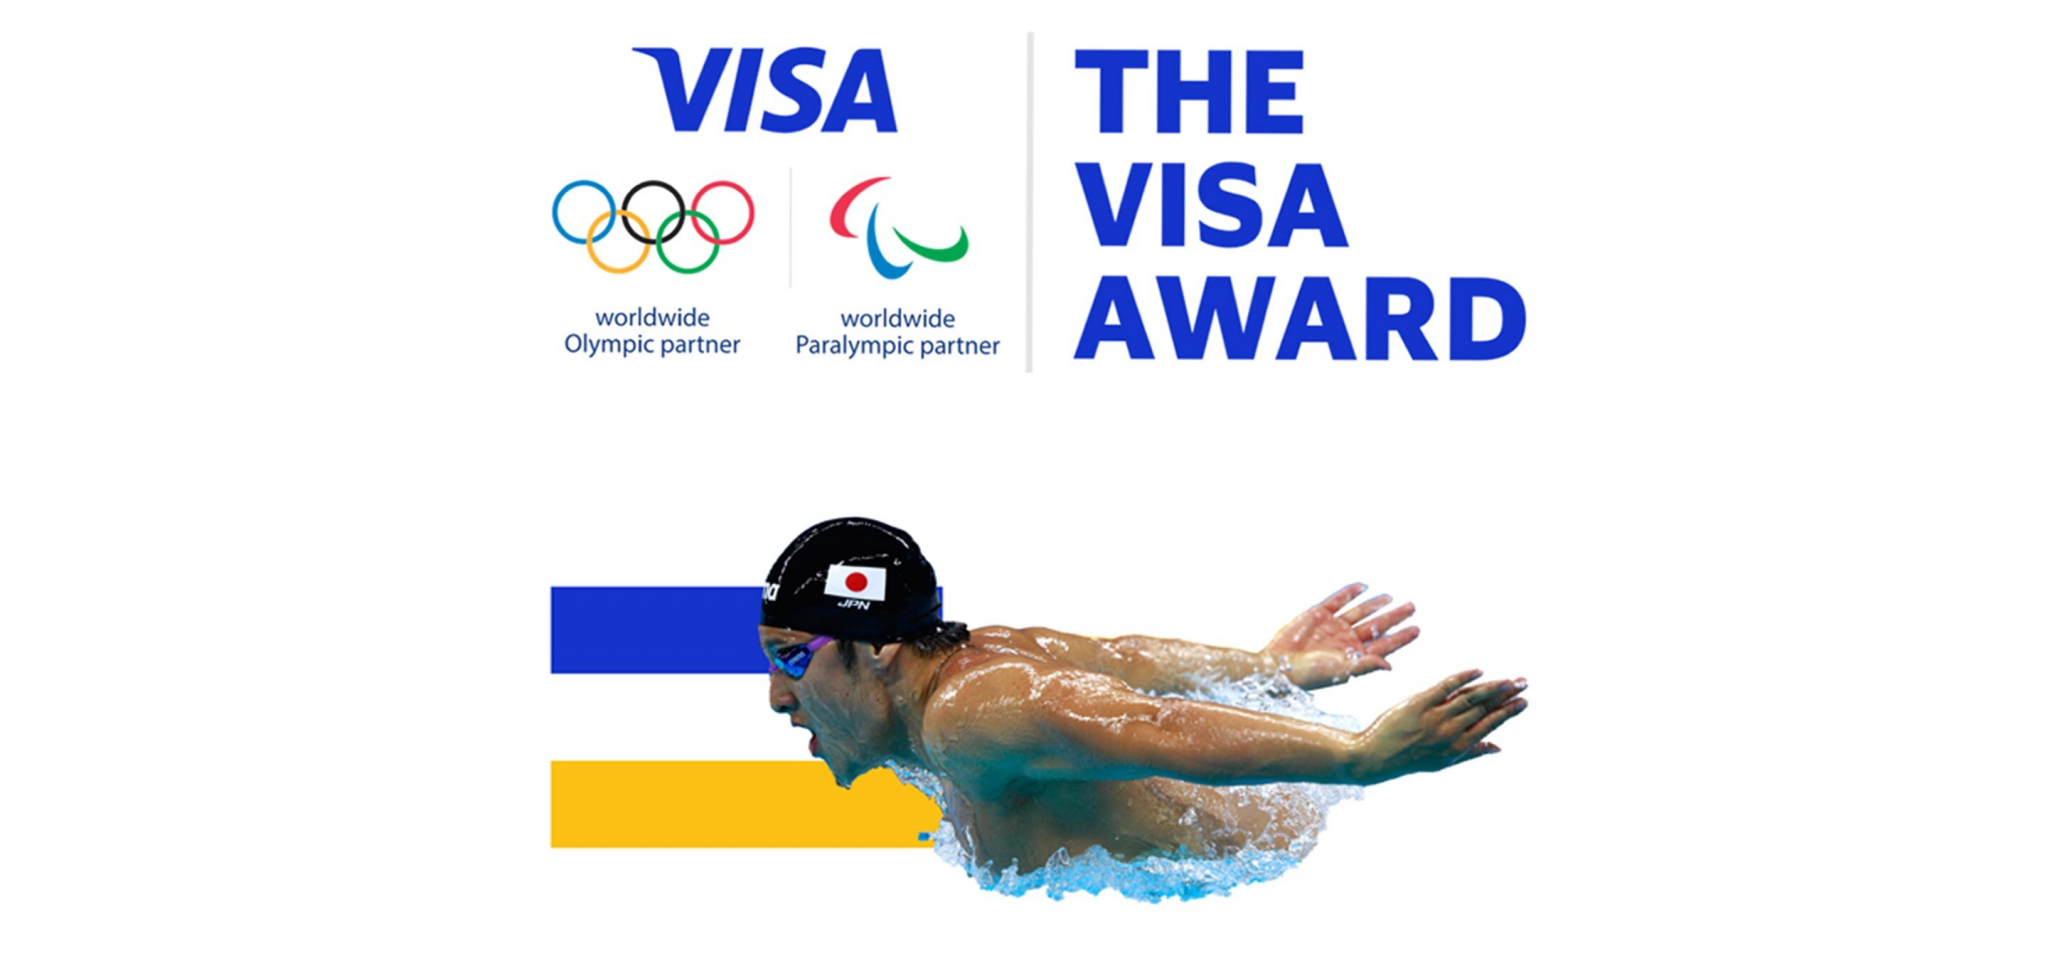 Visa award to be presented to one Olympian and Paralympian following fan vote